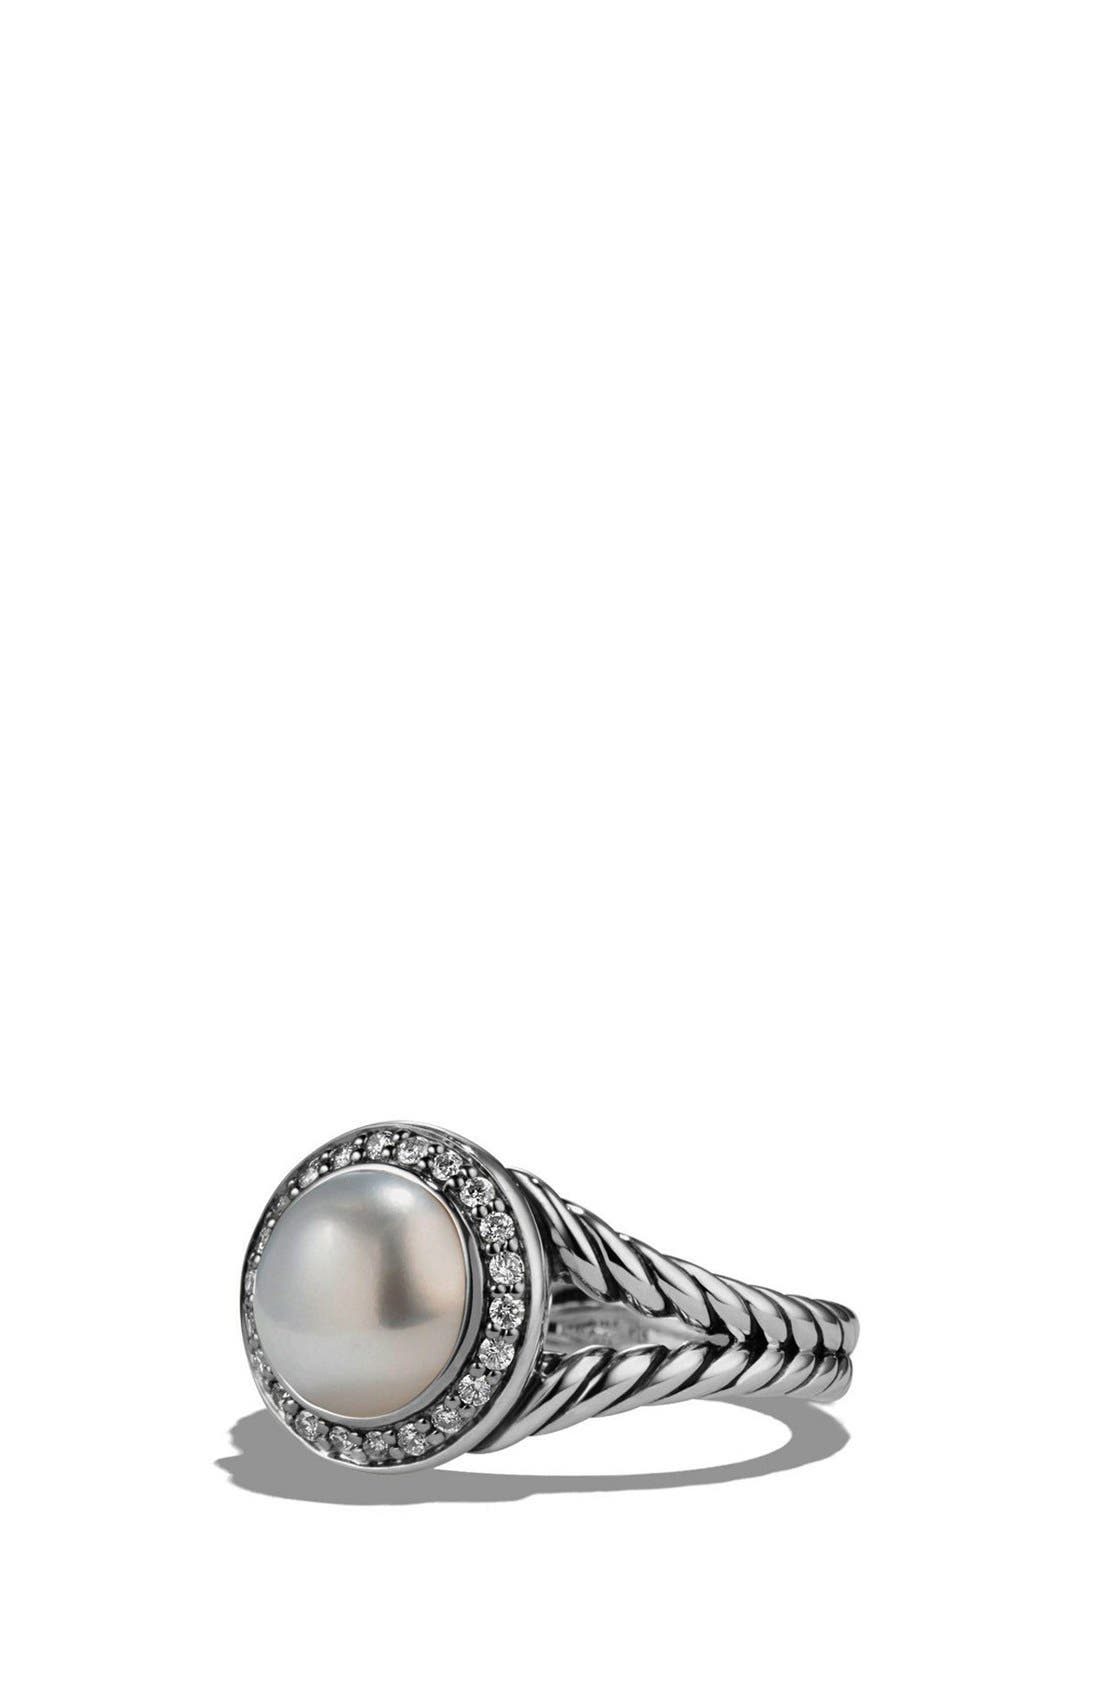 DAVID YURMAN 'Cerise' Ring with Pearl and Diamonds